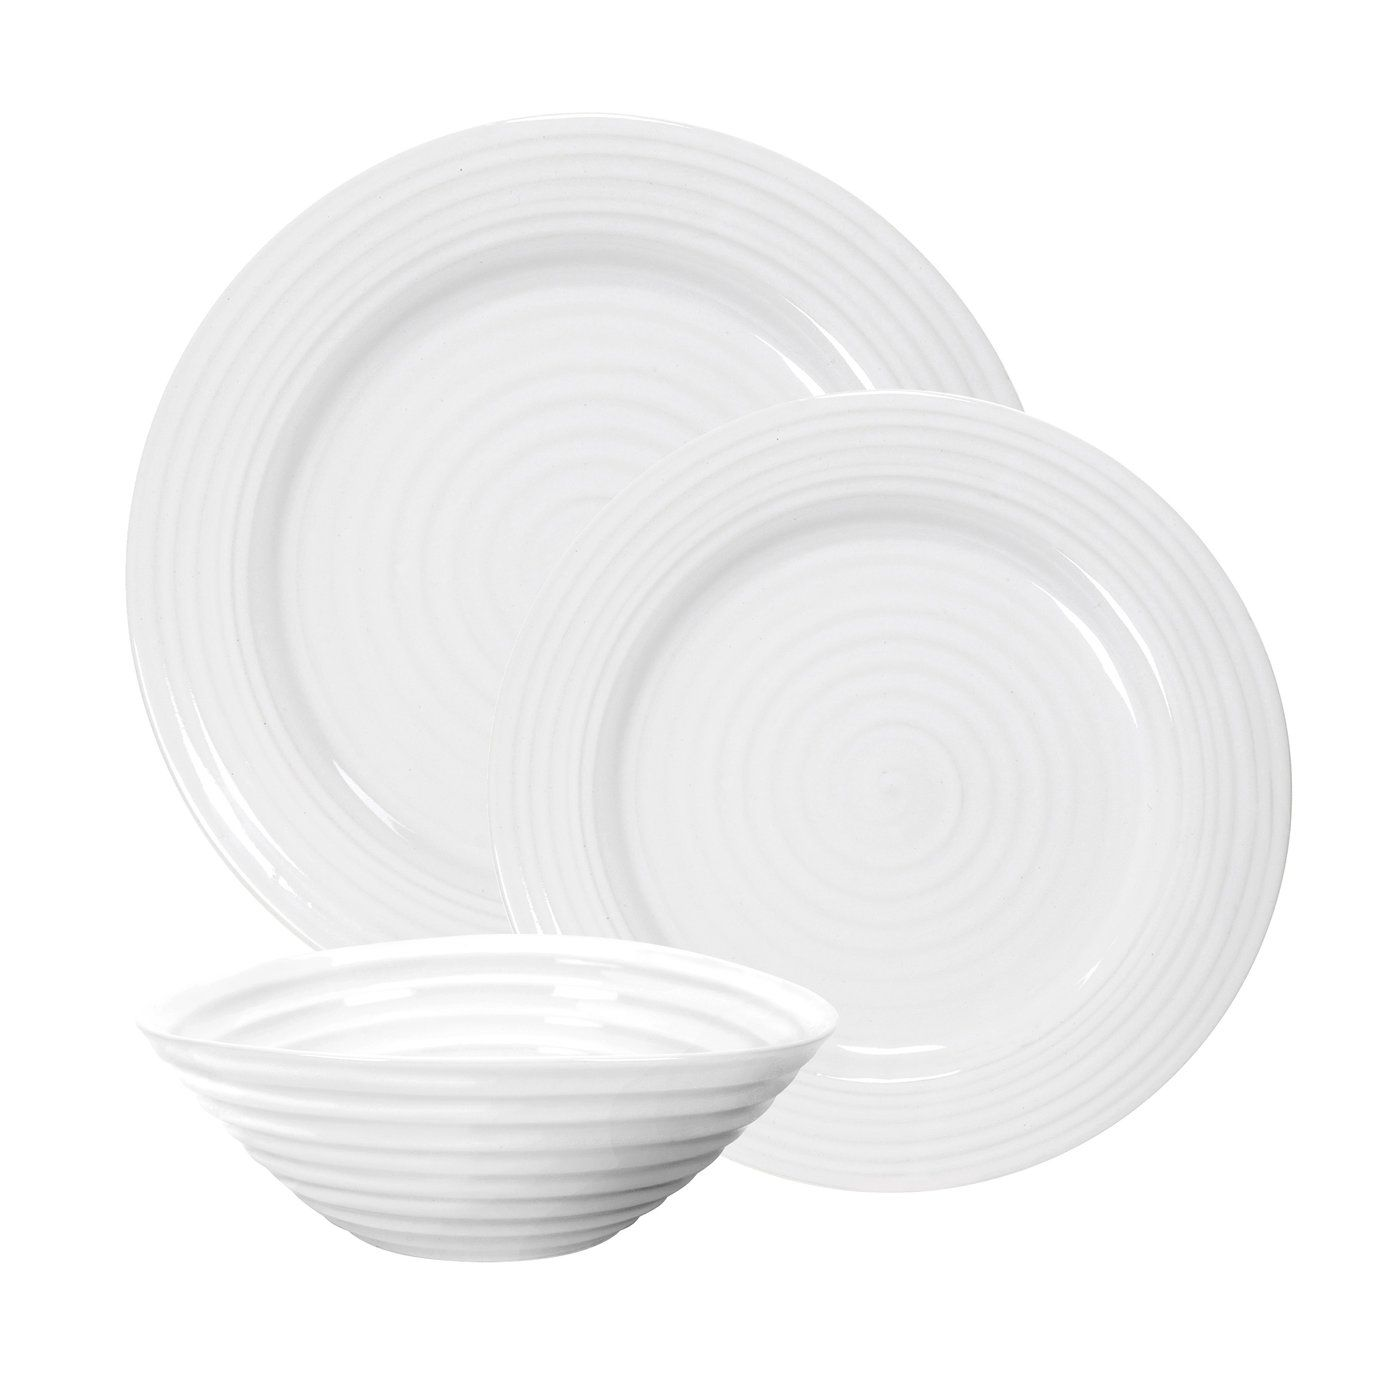 Sophie Conran 12 Piece Set - White